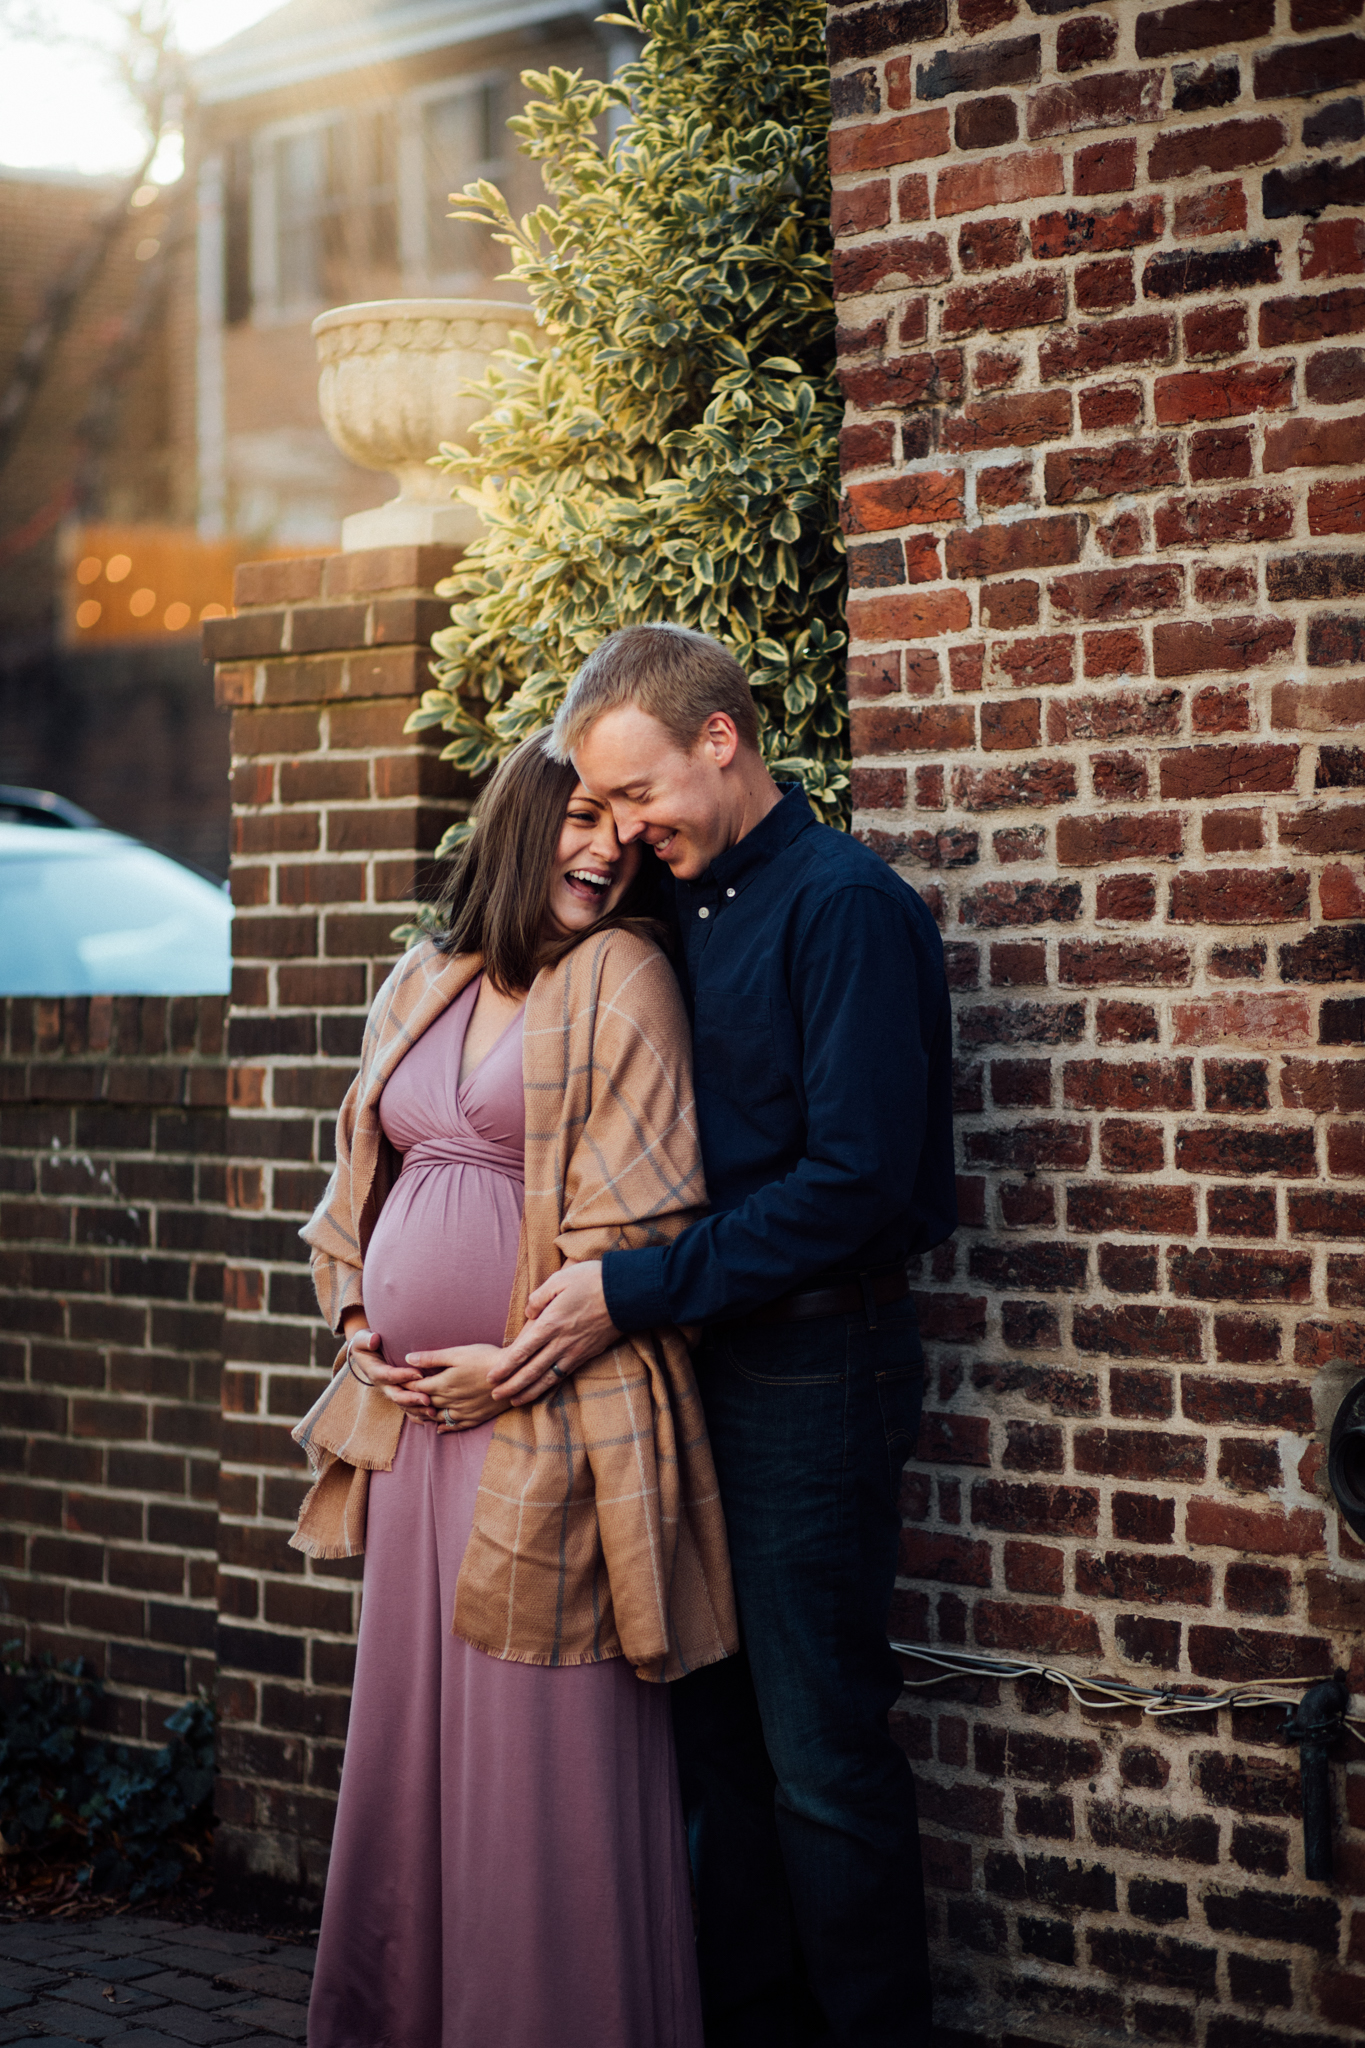 Pregnant woman laughing with man in urban setting by Huntsville and Madison Alabama maternity photographer Rachel K Photo